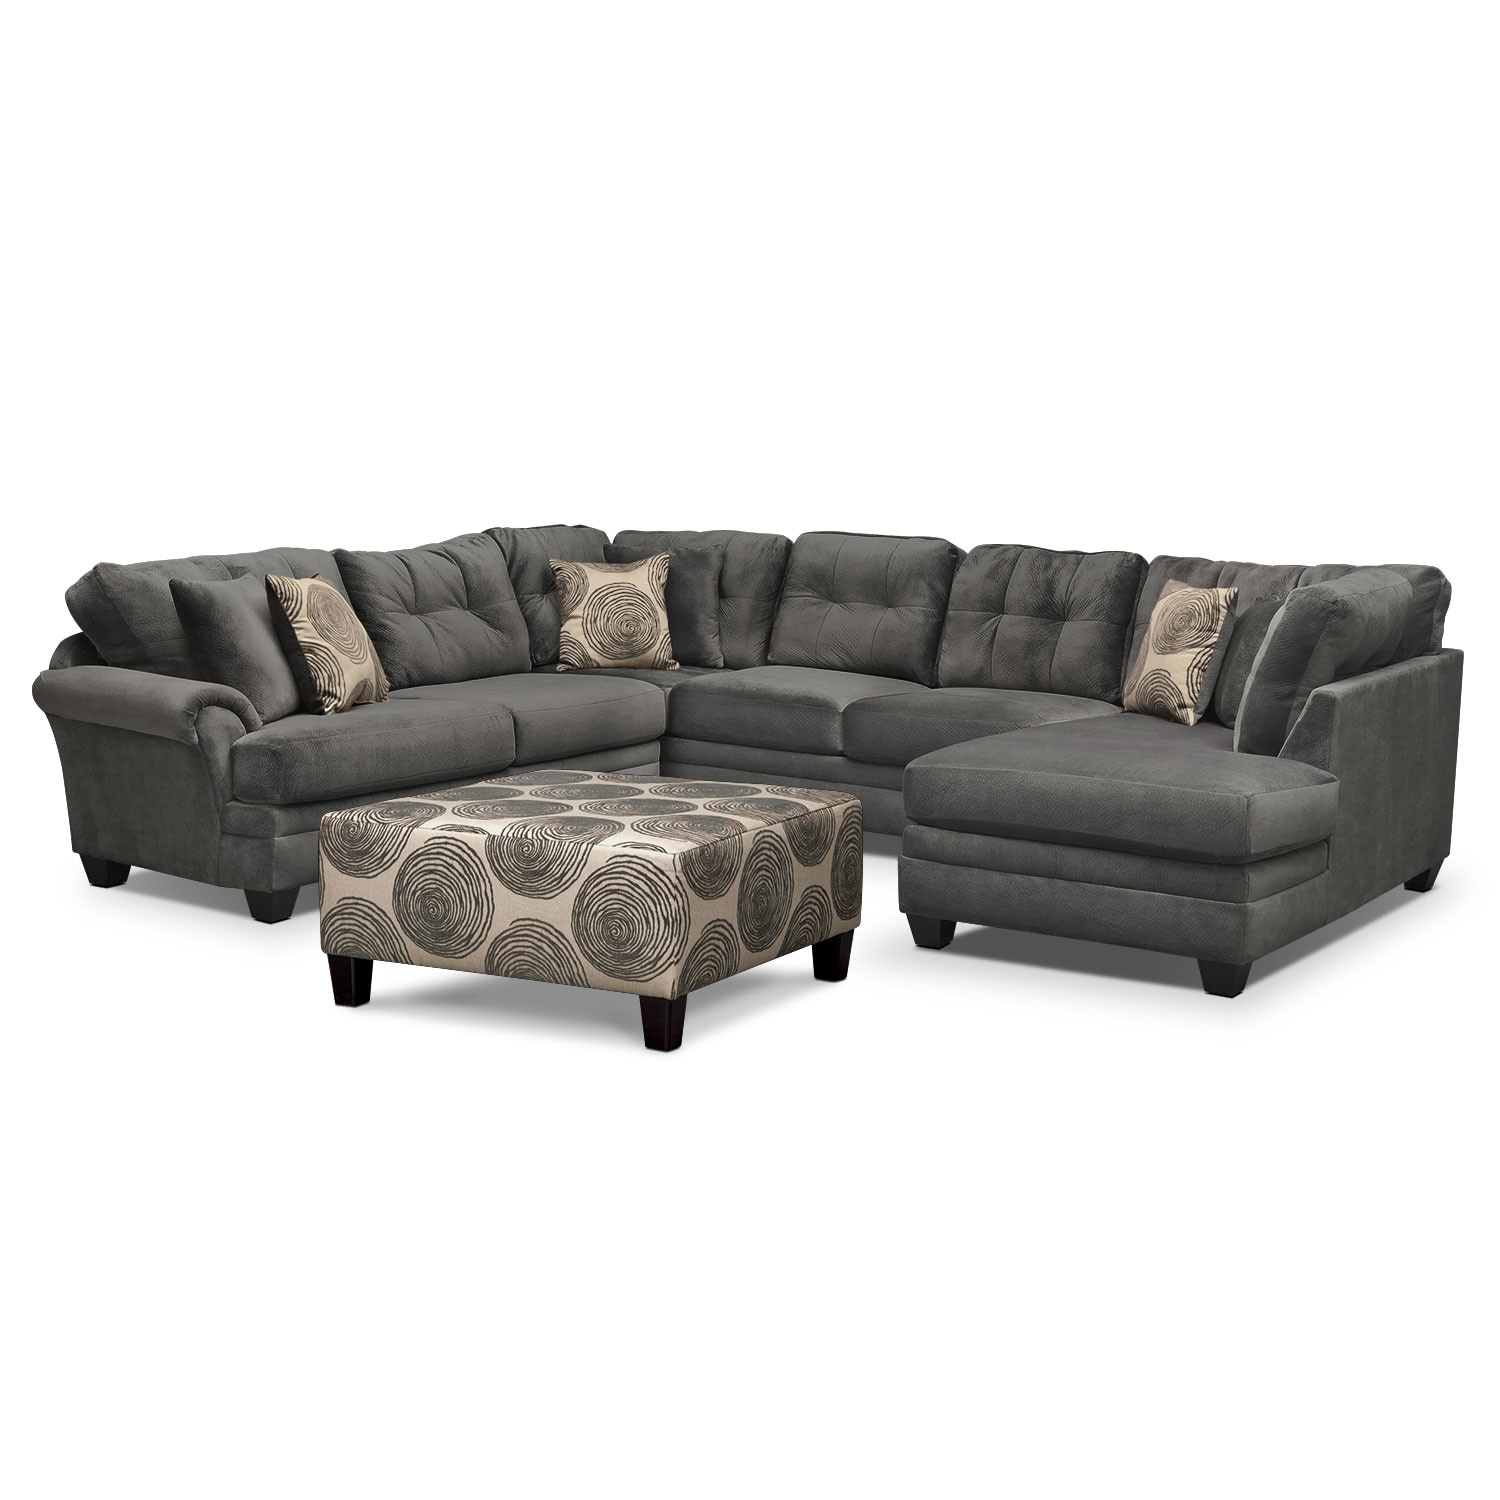 sofa package deals uk dillon small corner dfs packages cau levin furniture thesofa